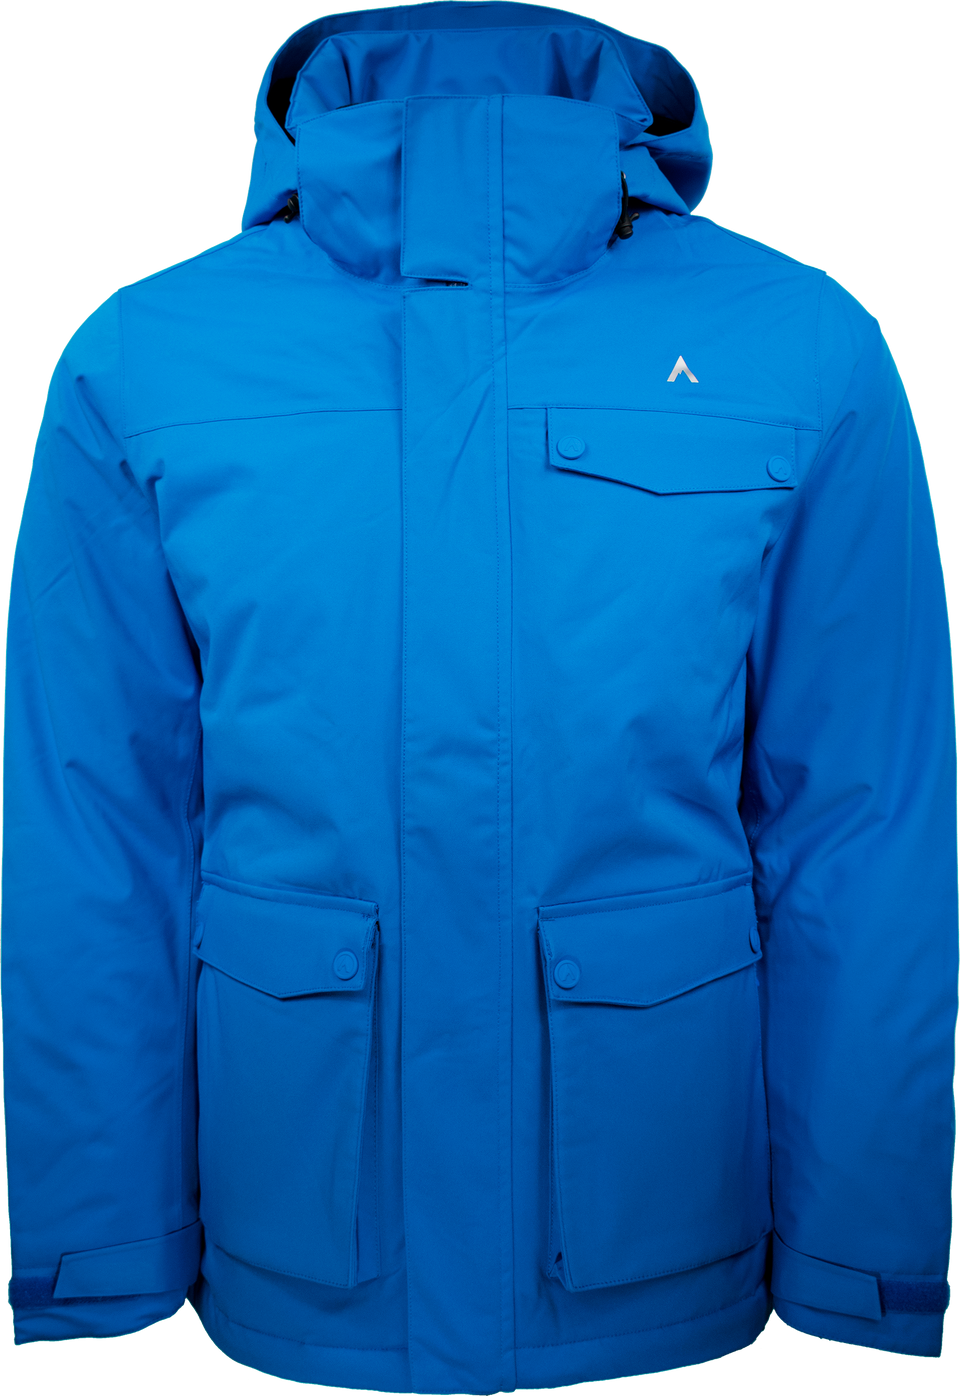 PEAK CW (MEN'S) INSULATED JACKET by Terracea - Waterproof, Windproof, Weatherproof Technical Outerwear